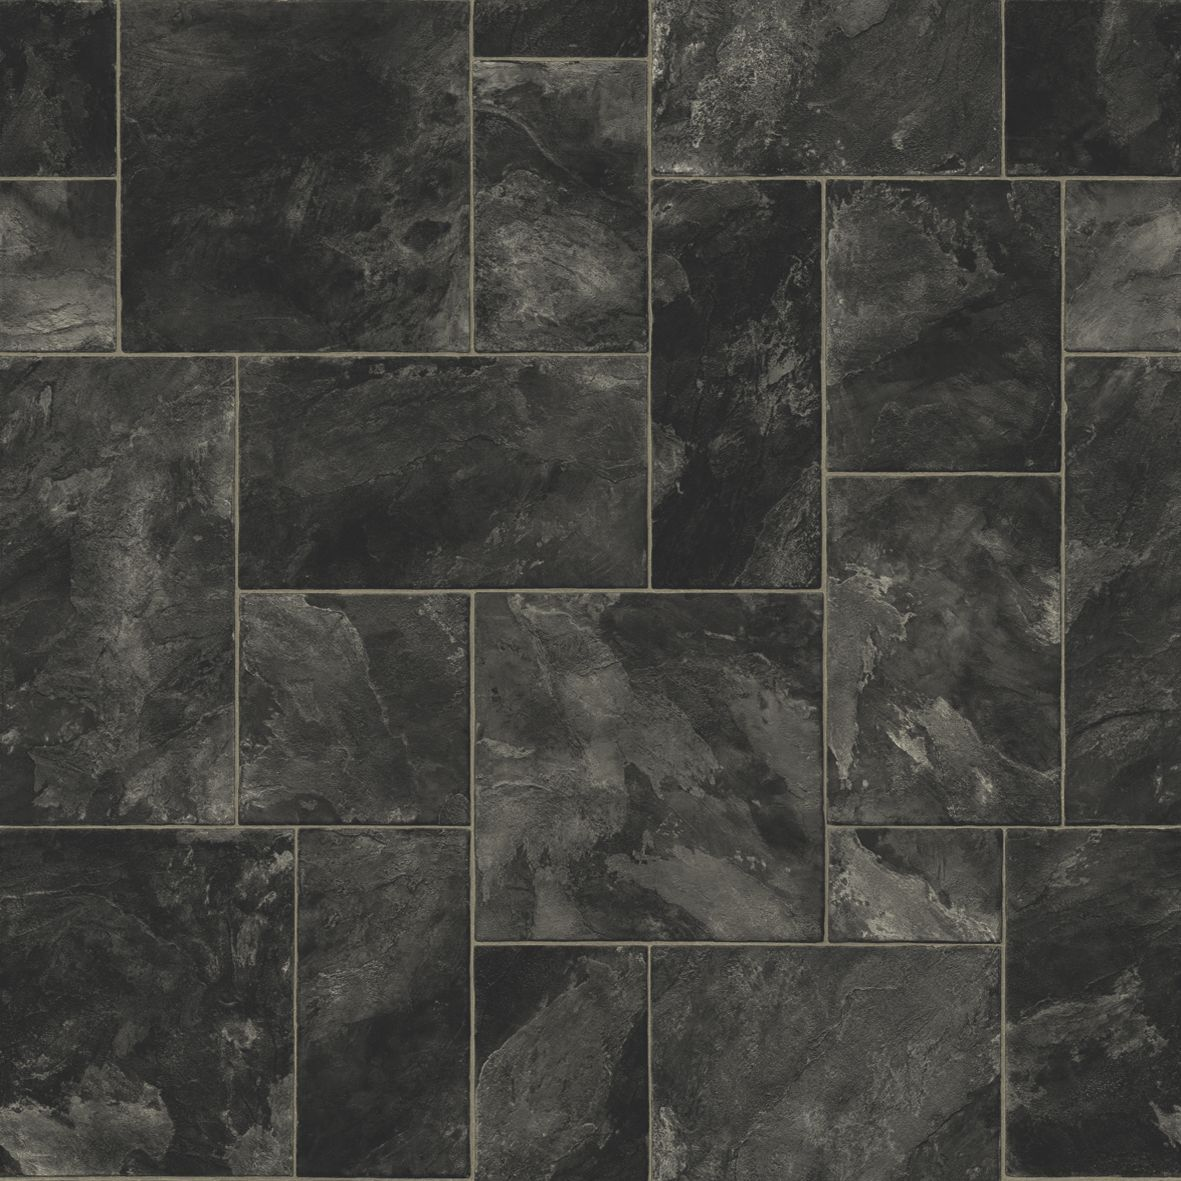 Bq Kitchen Tiles Octavina Black Vinyl 6ma2 Vinyls Vinyl Sheets And Slate